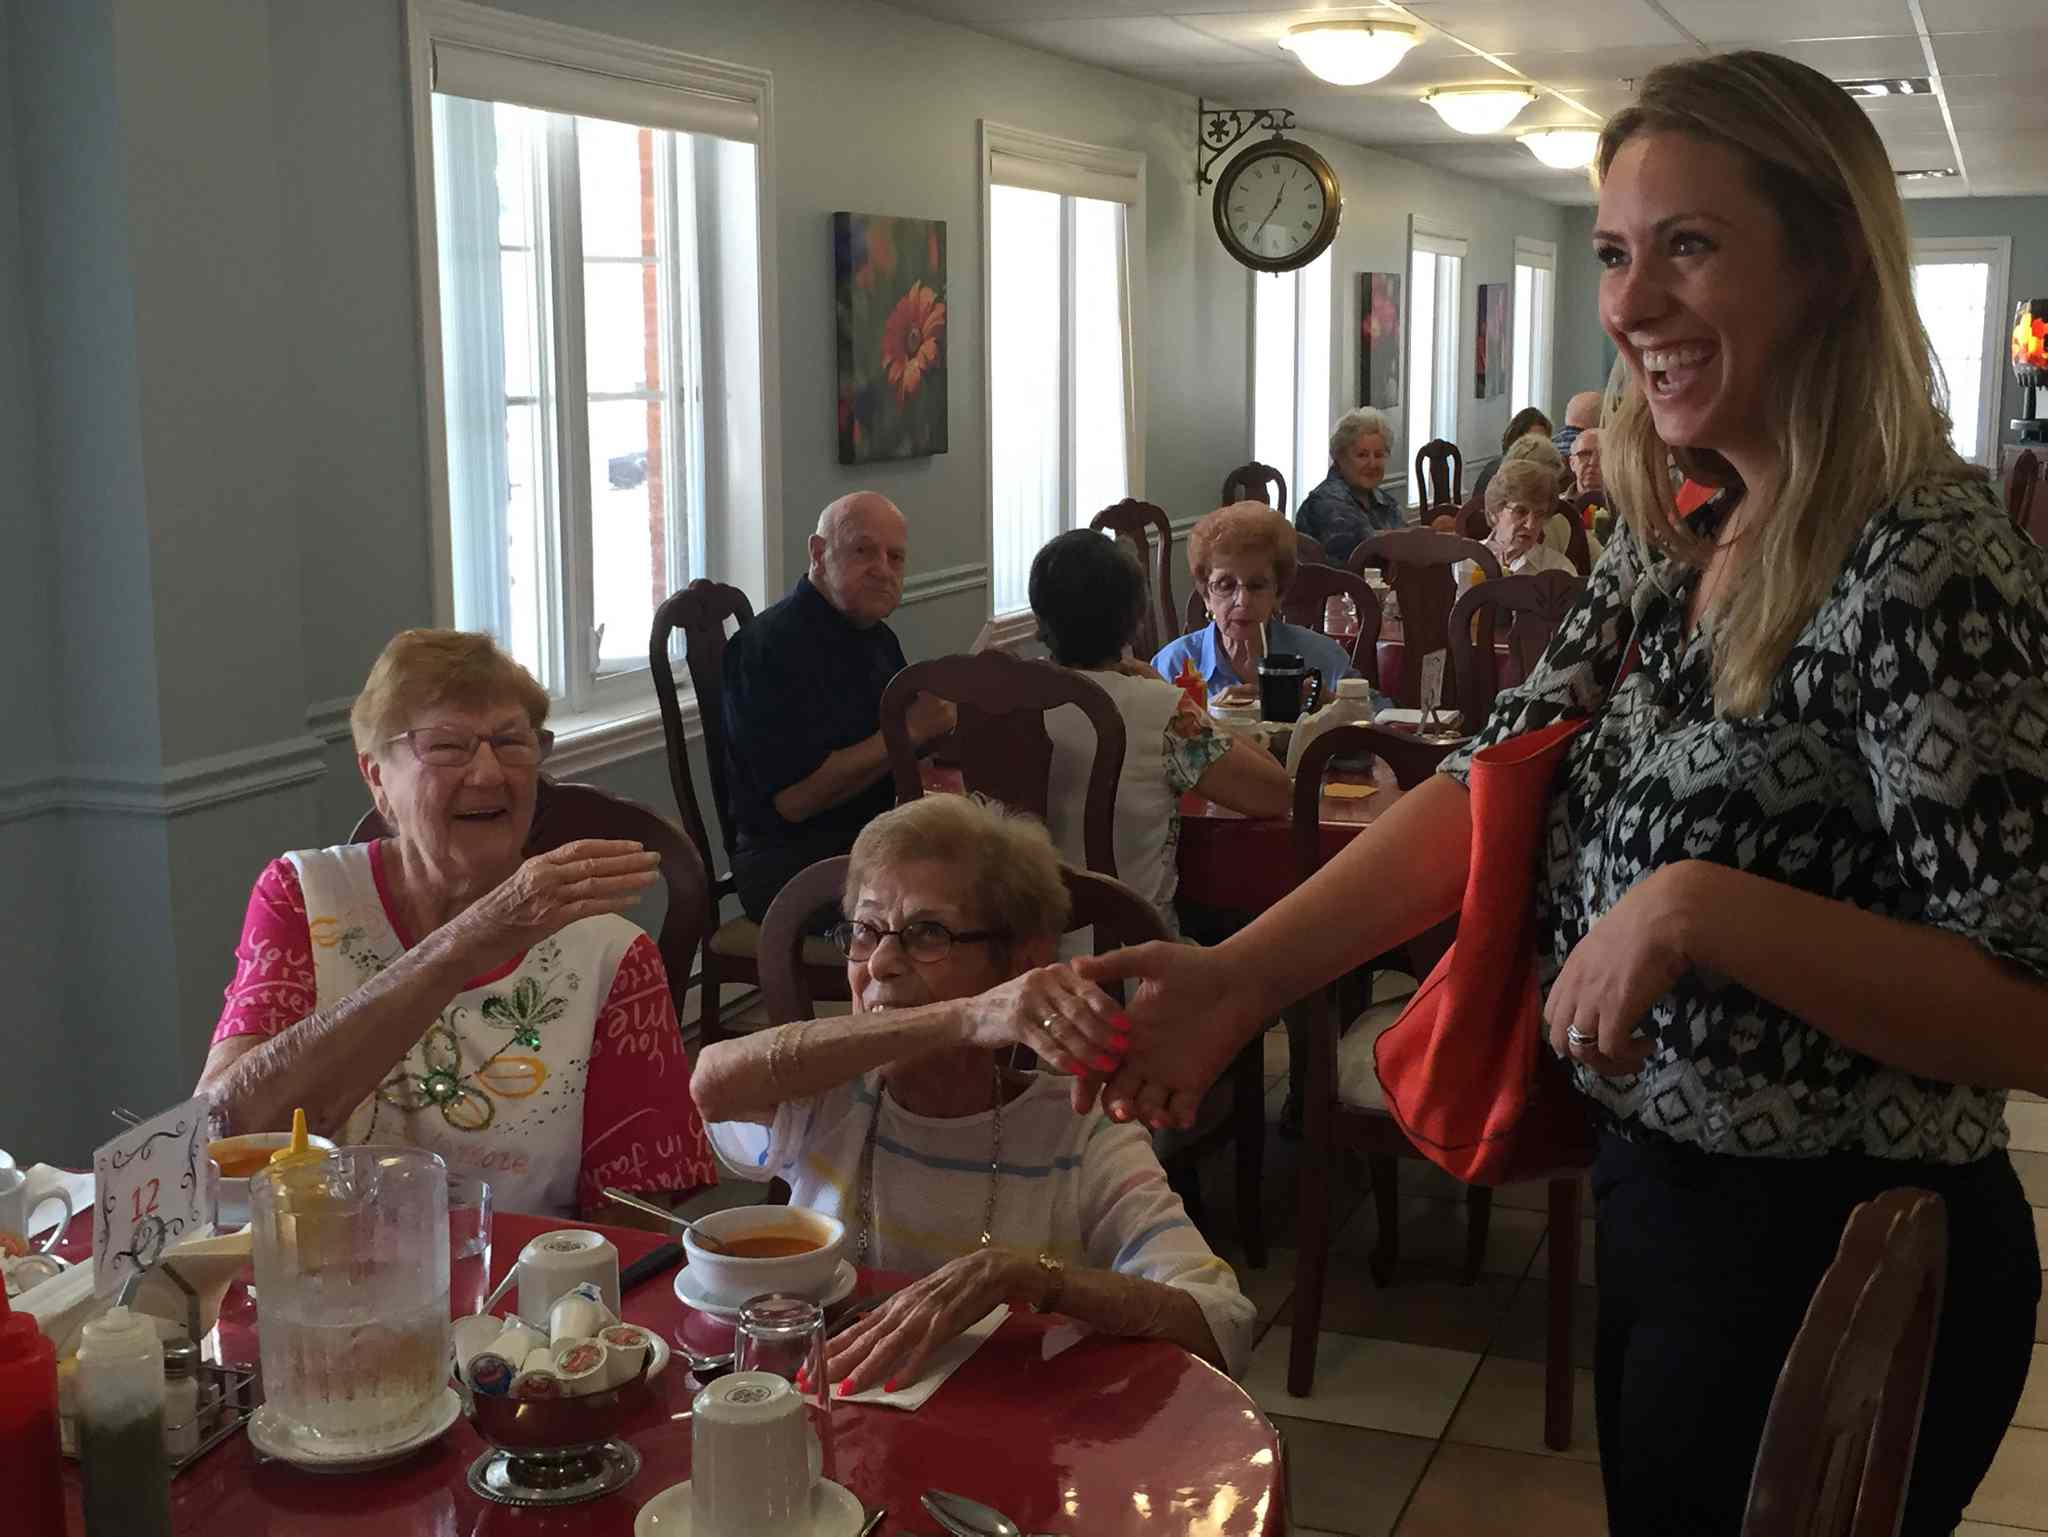 Ruth Ellen Brosseau campaigns for re-election at a seniors' residence in Berthierville, Que. August 15.